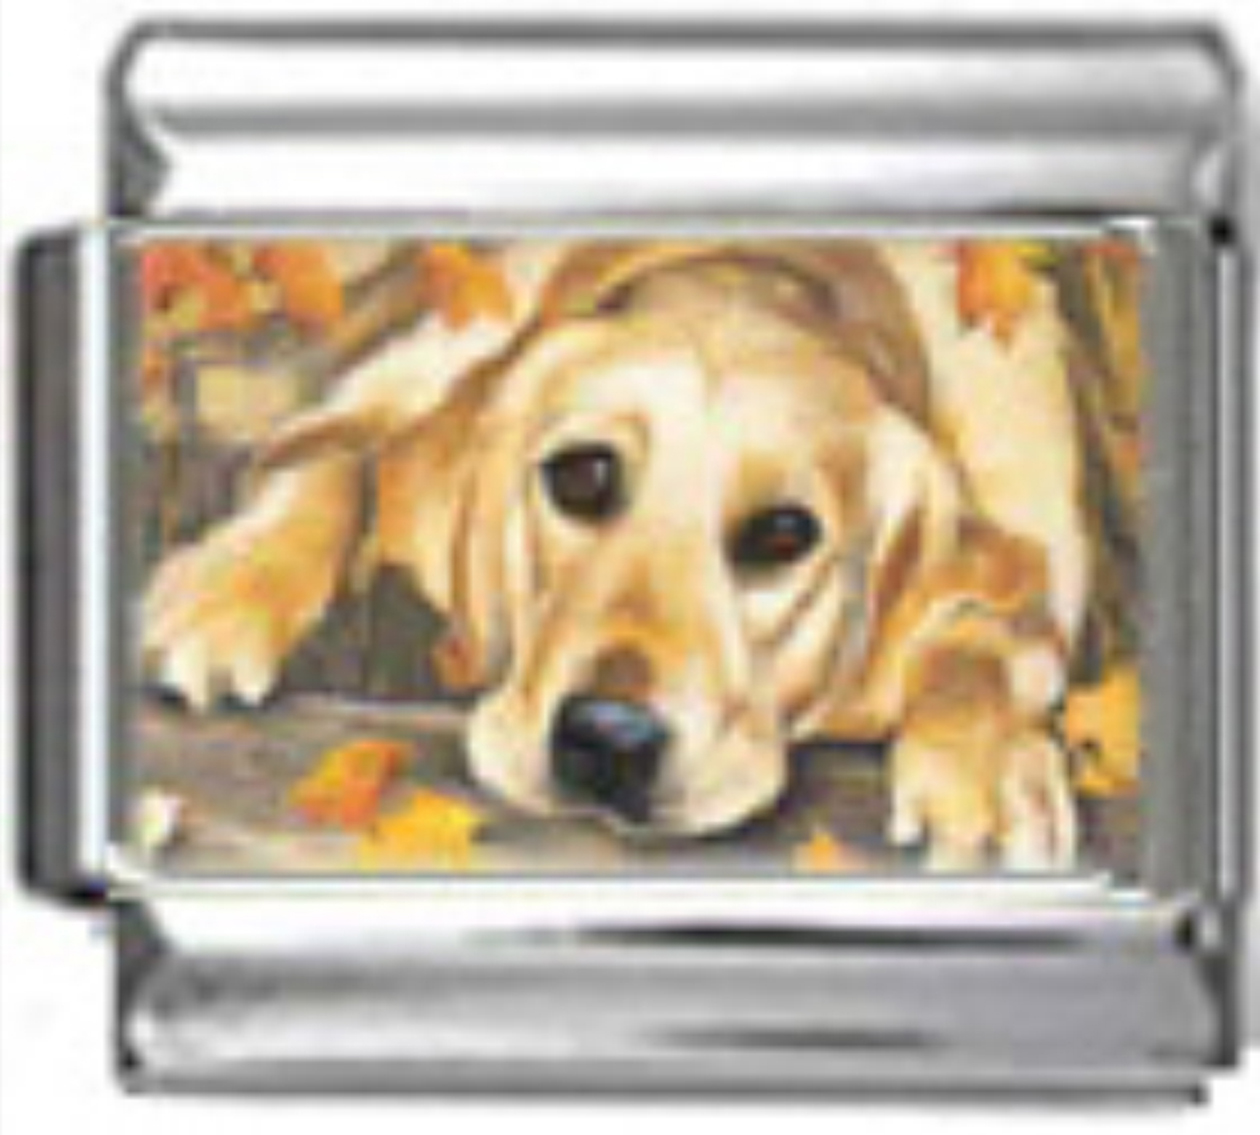 DG214-Golden-Retriever-Dog-1